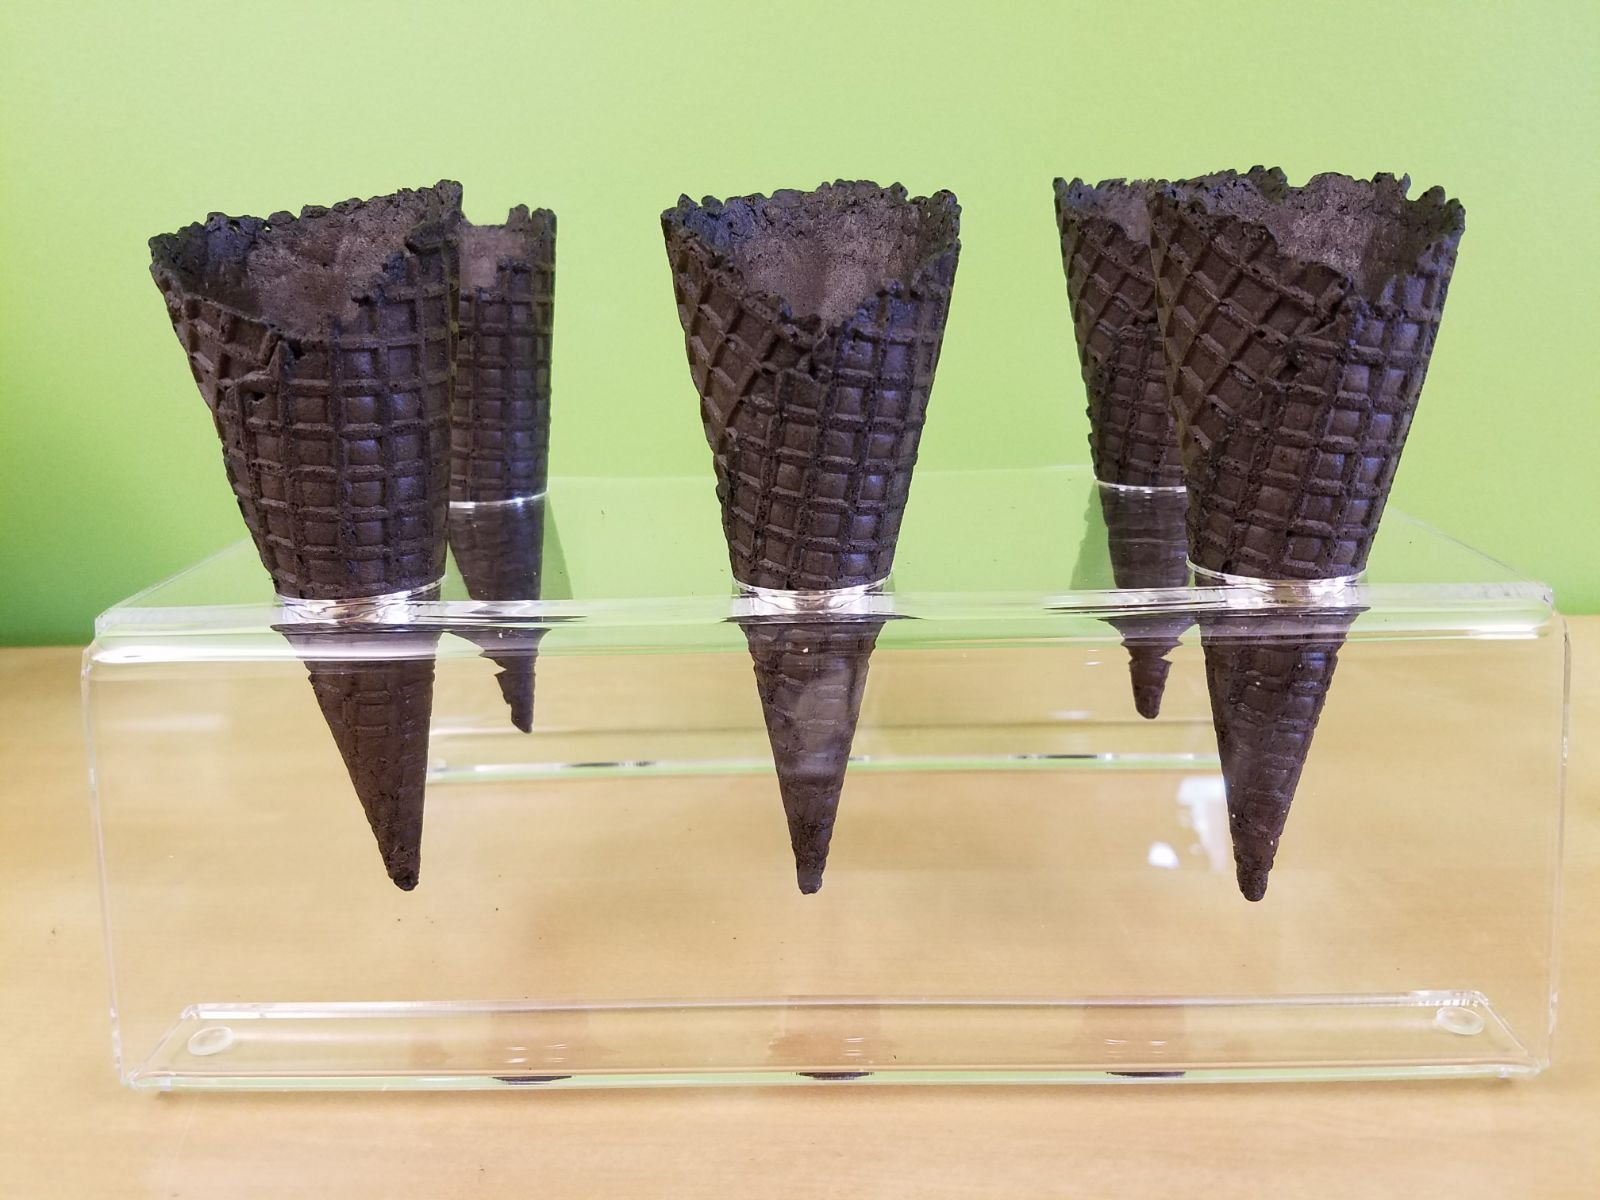 Cones (2.16'' X 5.5'') - 312 Units / Case (Black) by Altimate Foods (Image #4)